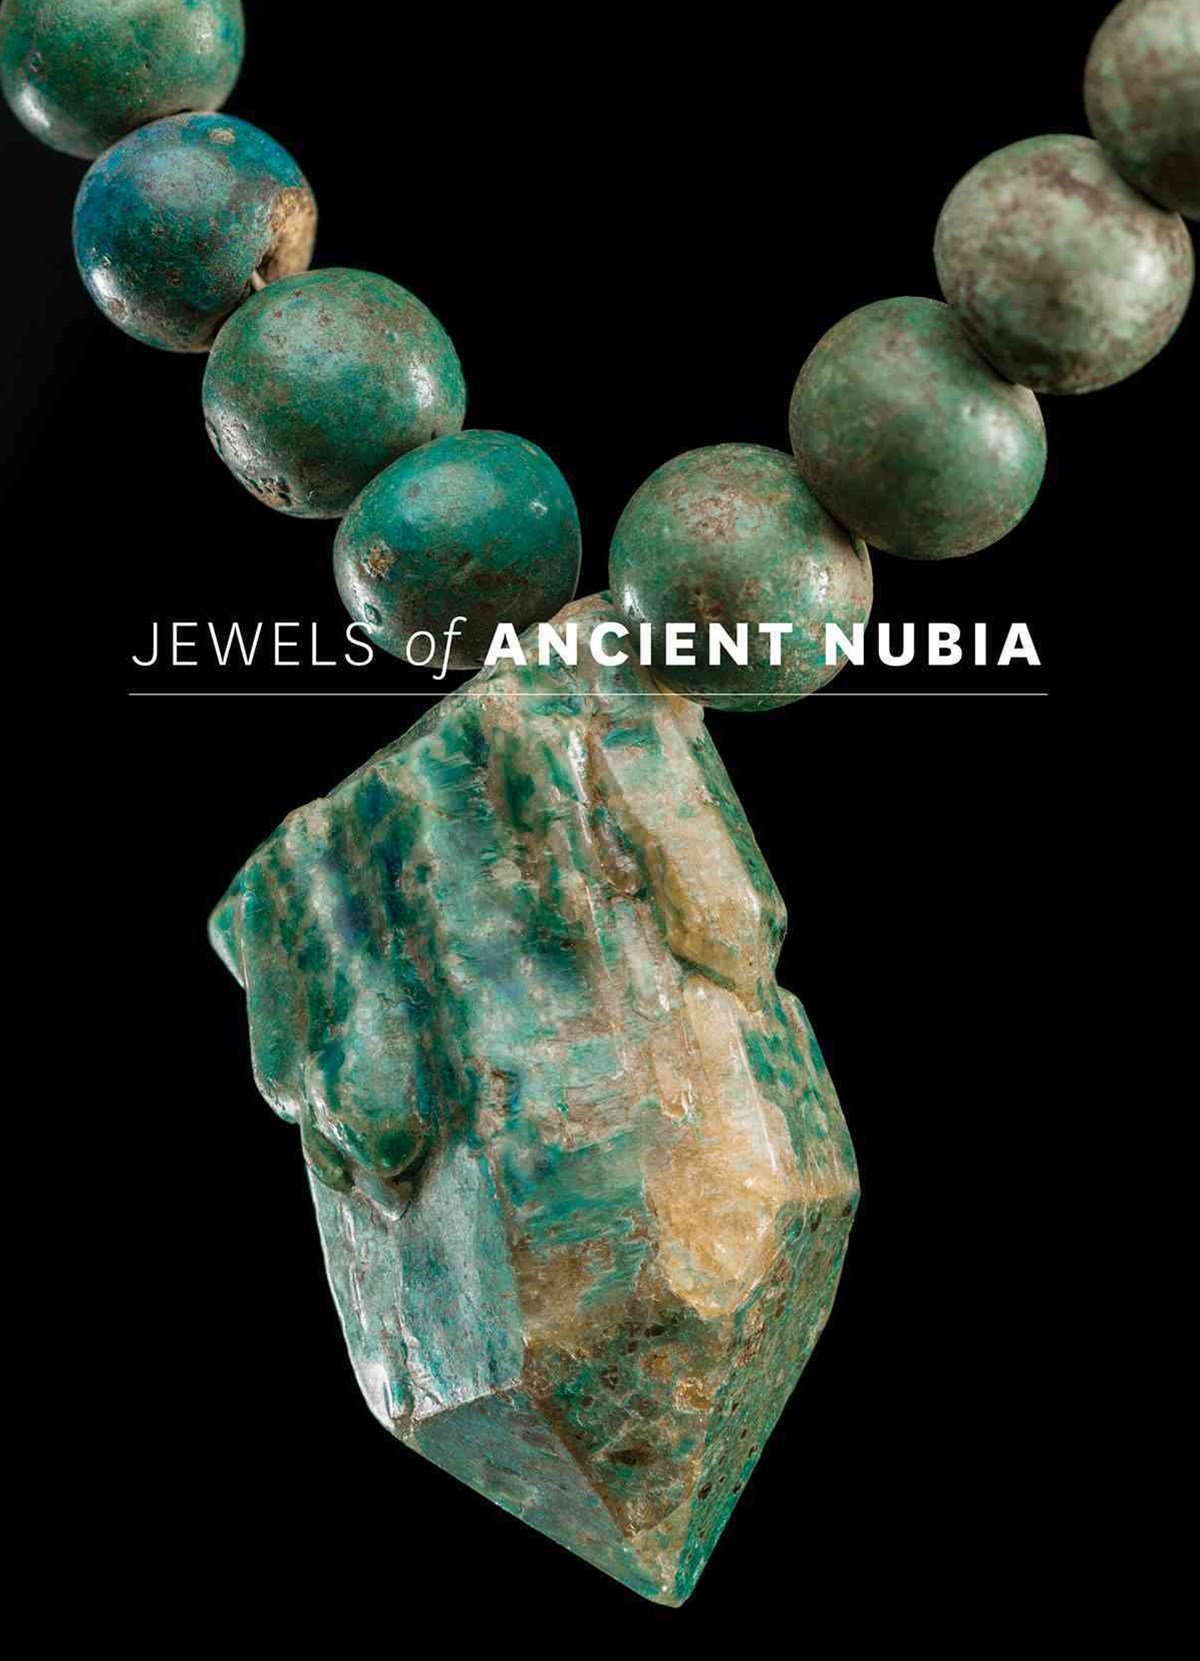 Jewels of Ancient Nubia